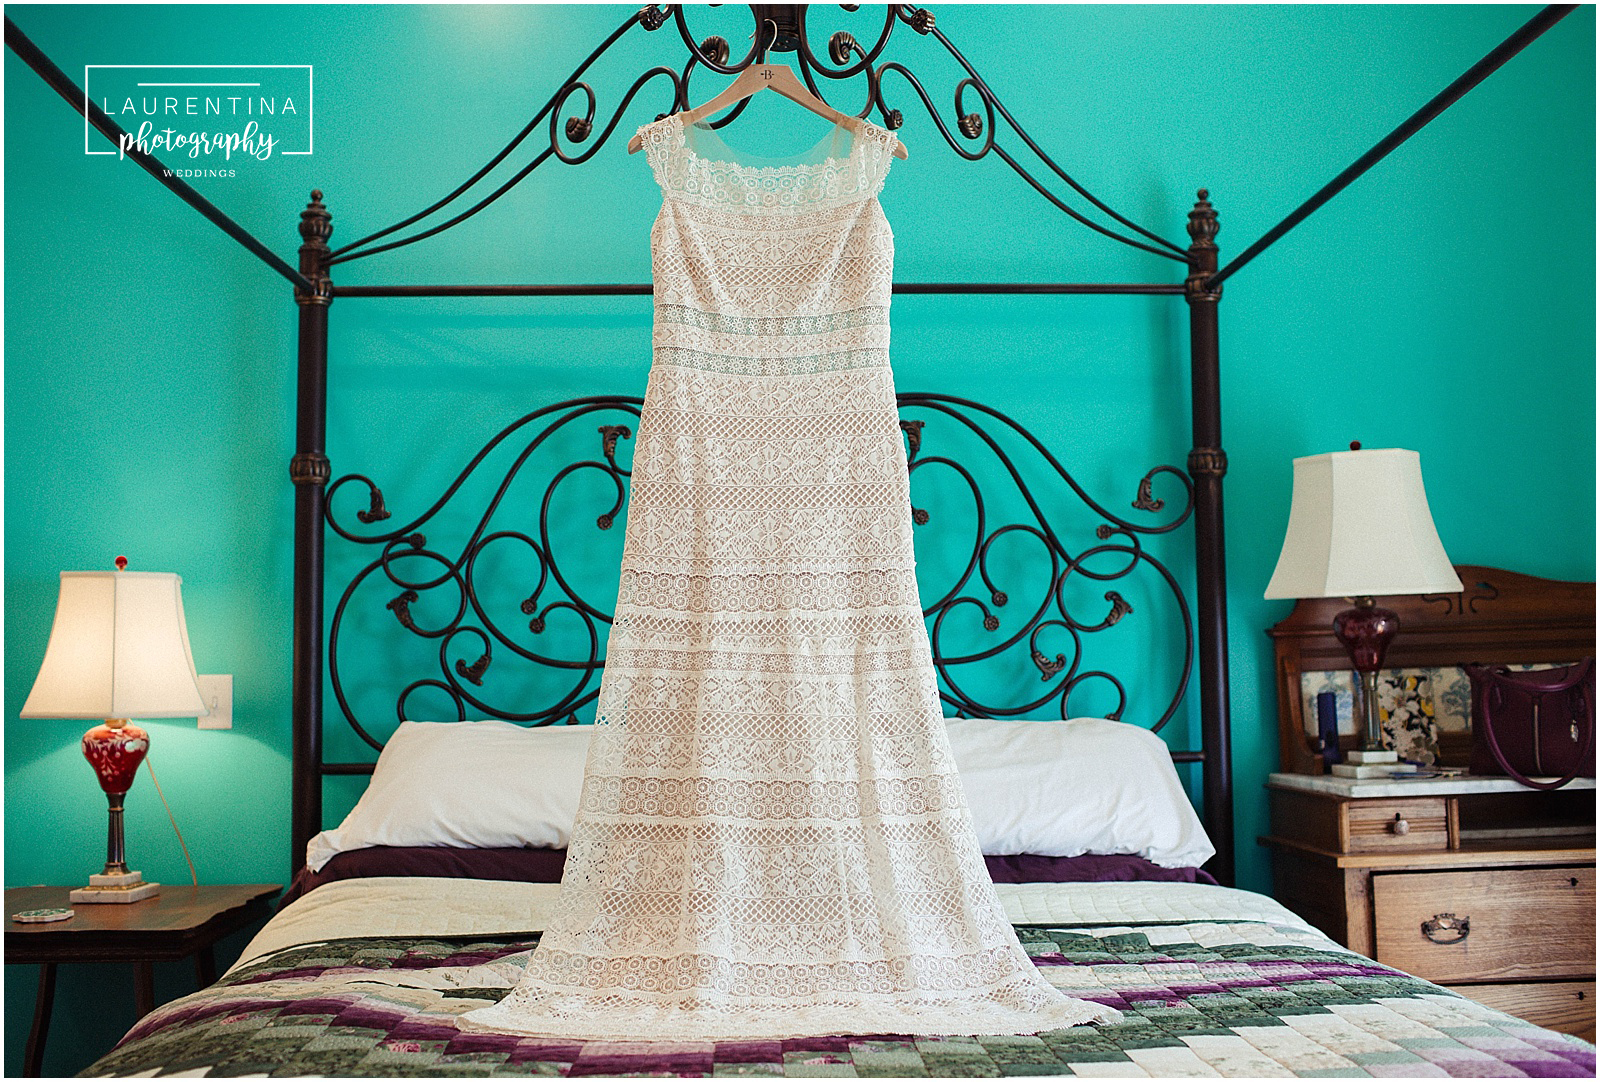 BHLDN Vintage Lace Wedding Dress Bahai Wedding Briar Patch Bed and Breakfast